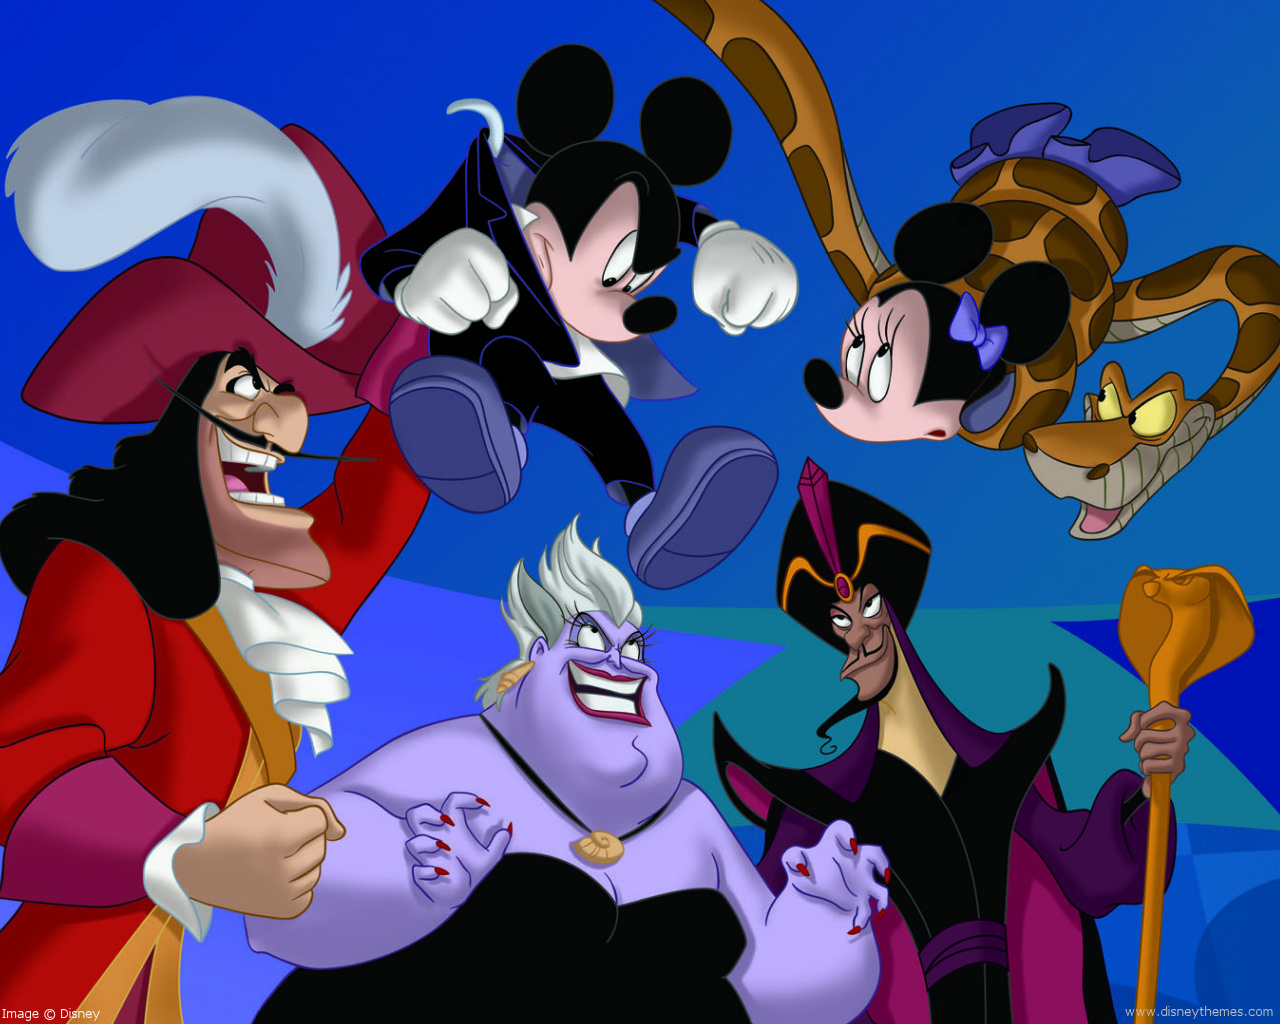 Captain Hook images Disney Villains HD wallpaper and background 1280x1024